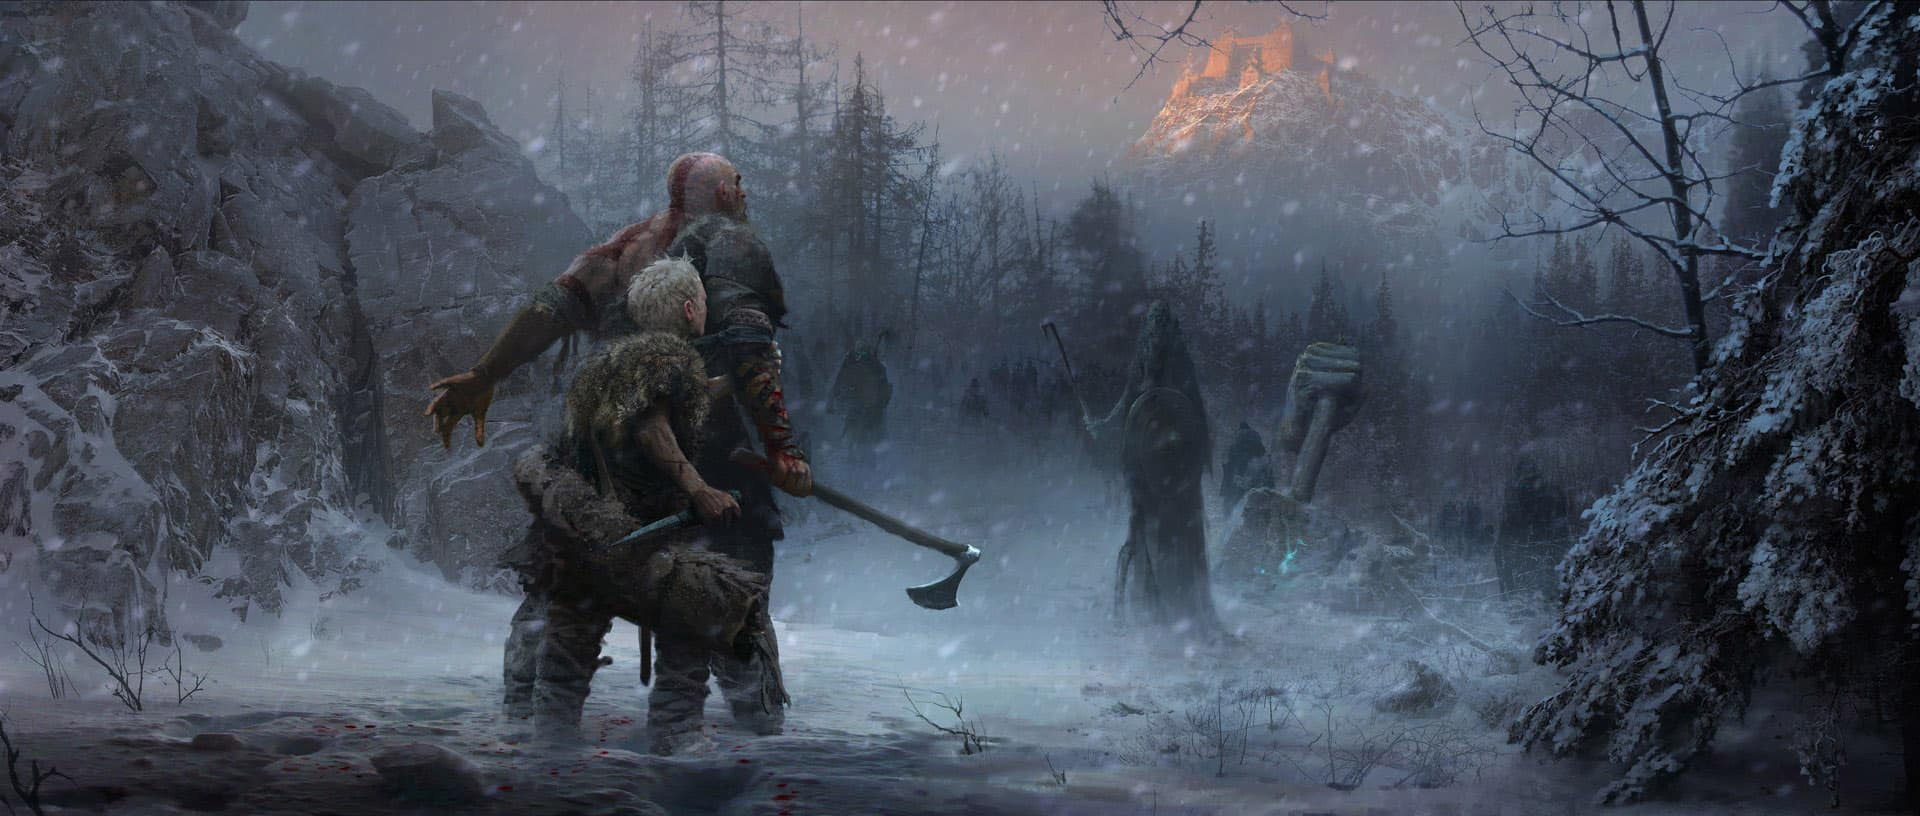 God of War 2018 Concept Art